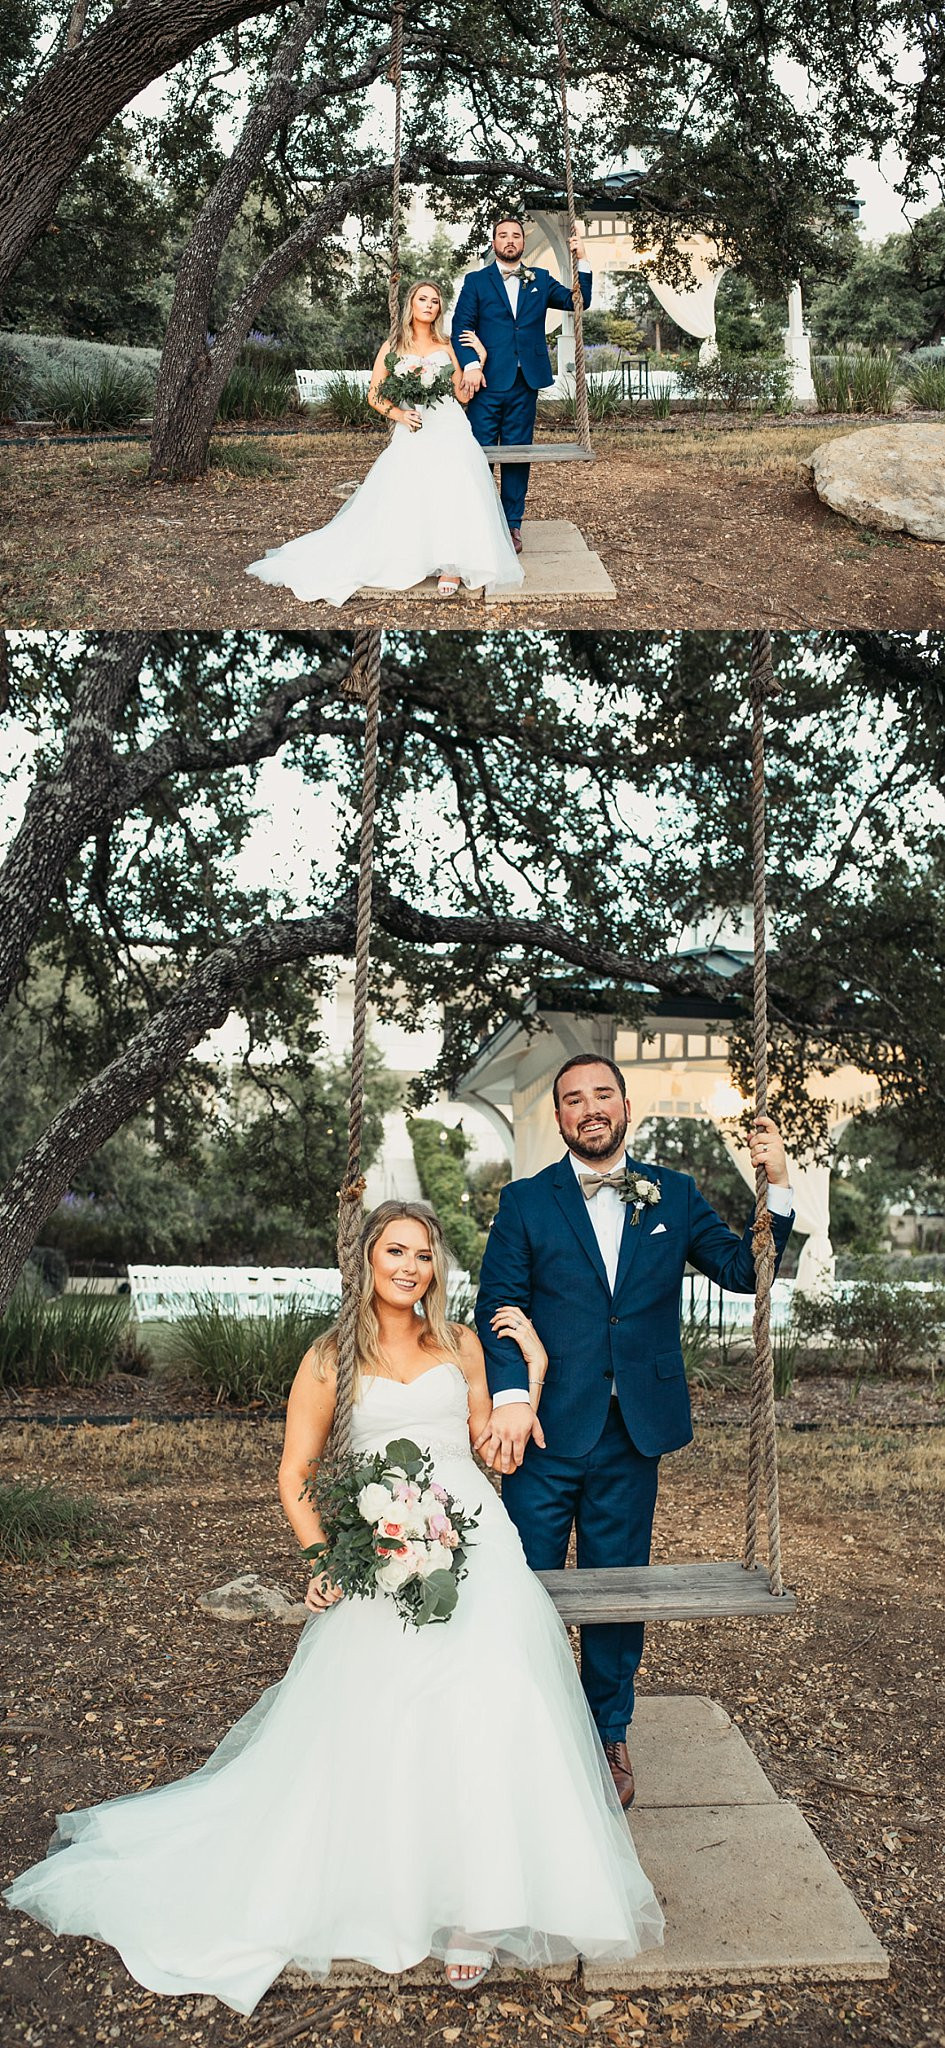 Wedding at The Kendall Plantation in Boerne, TX, Snap Chic Photography, Boerne and San Antonio Wedding Photographer, Boerne Wedding Venues